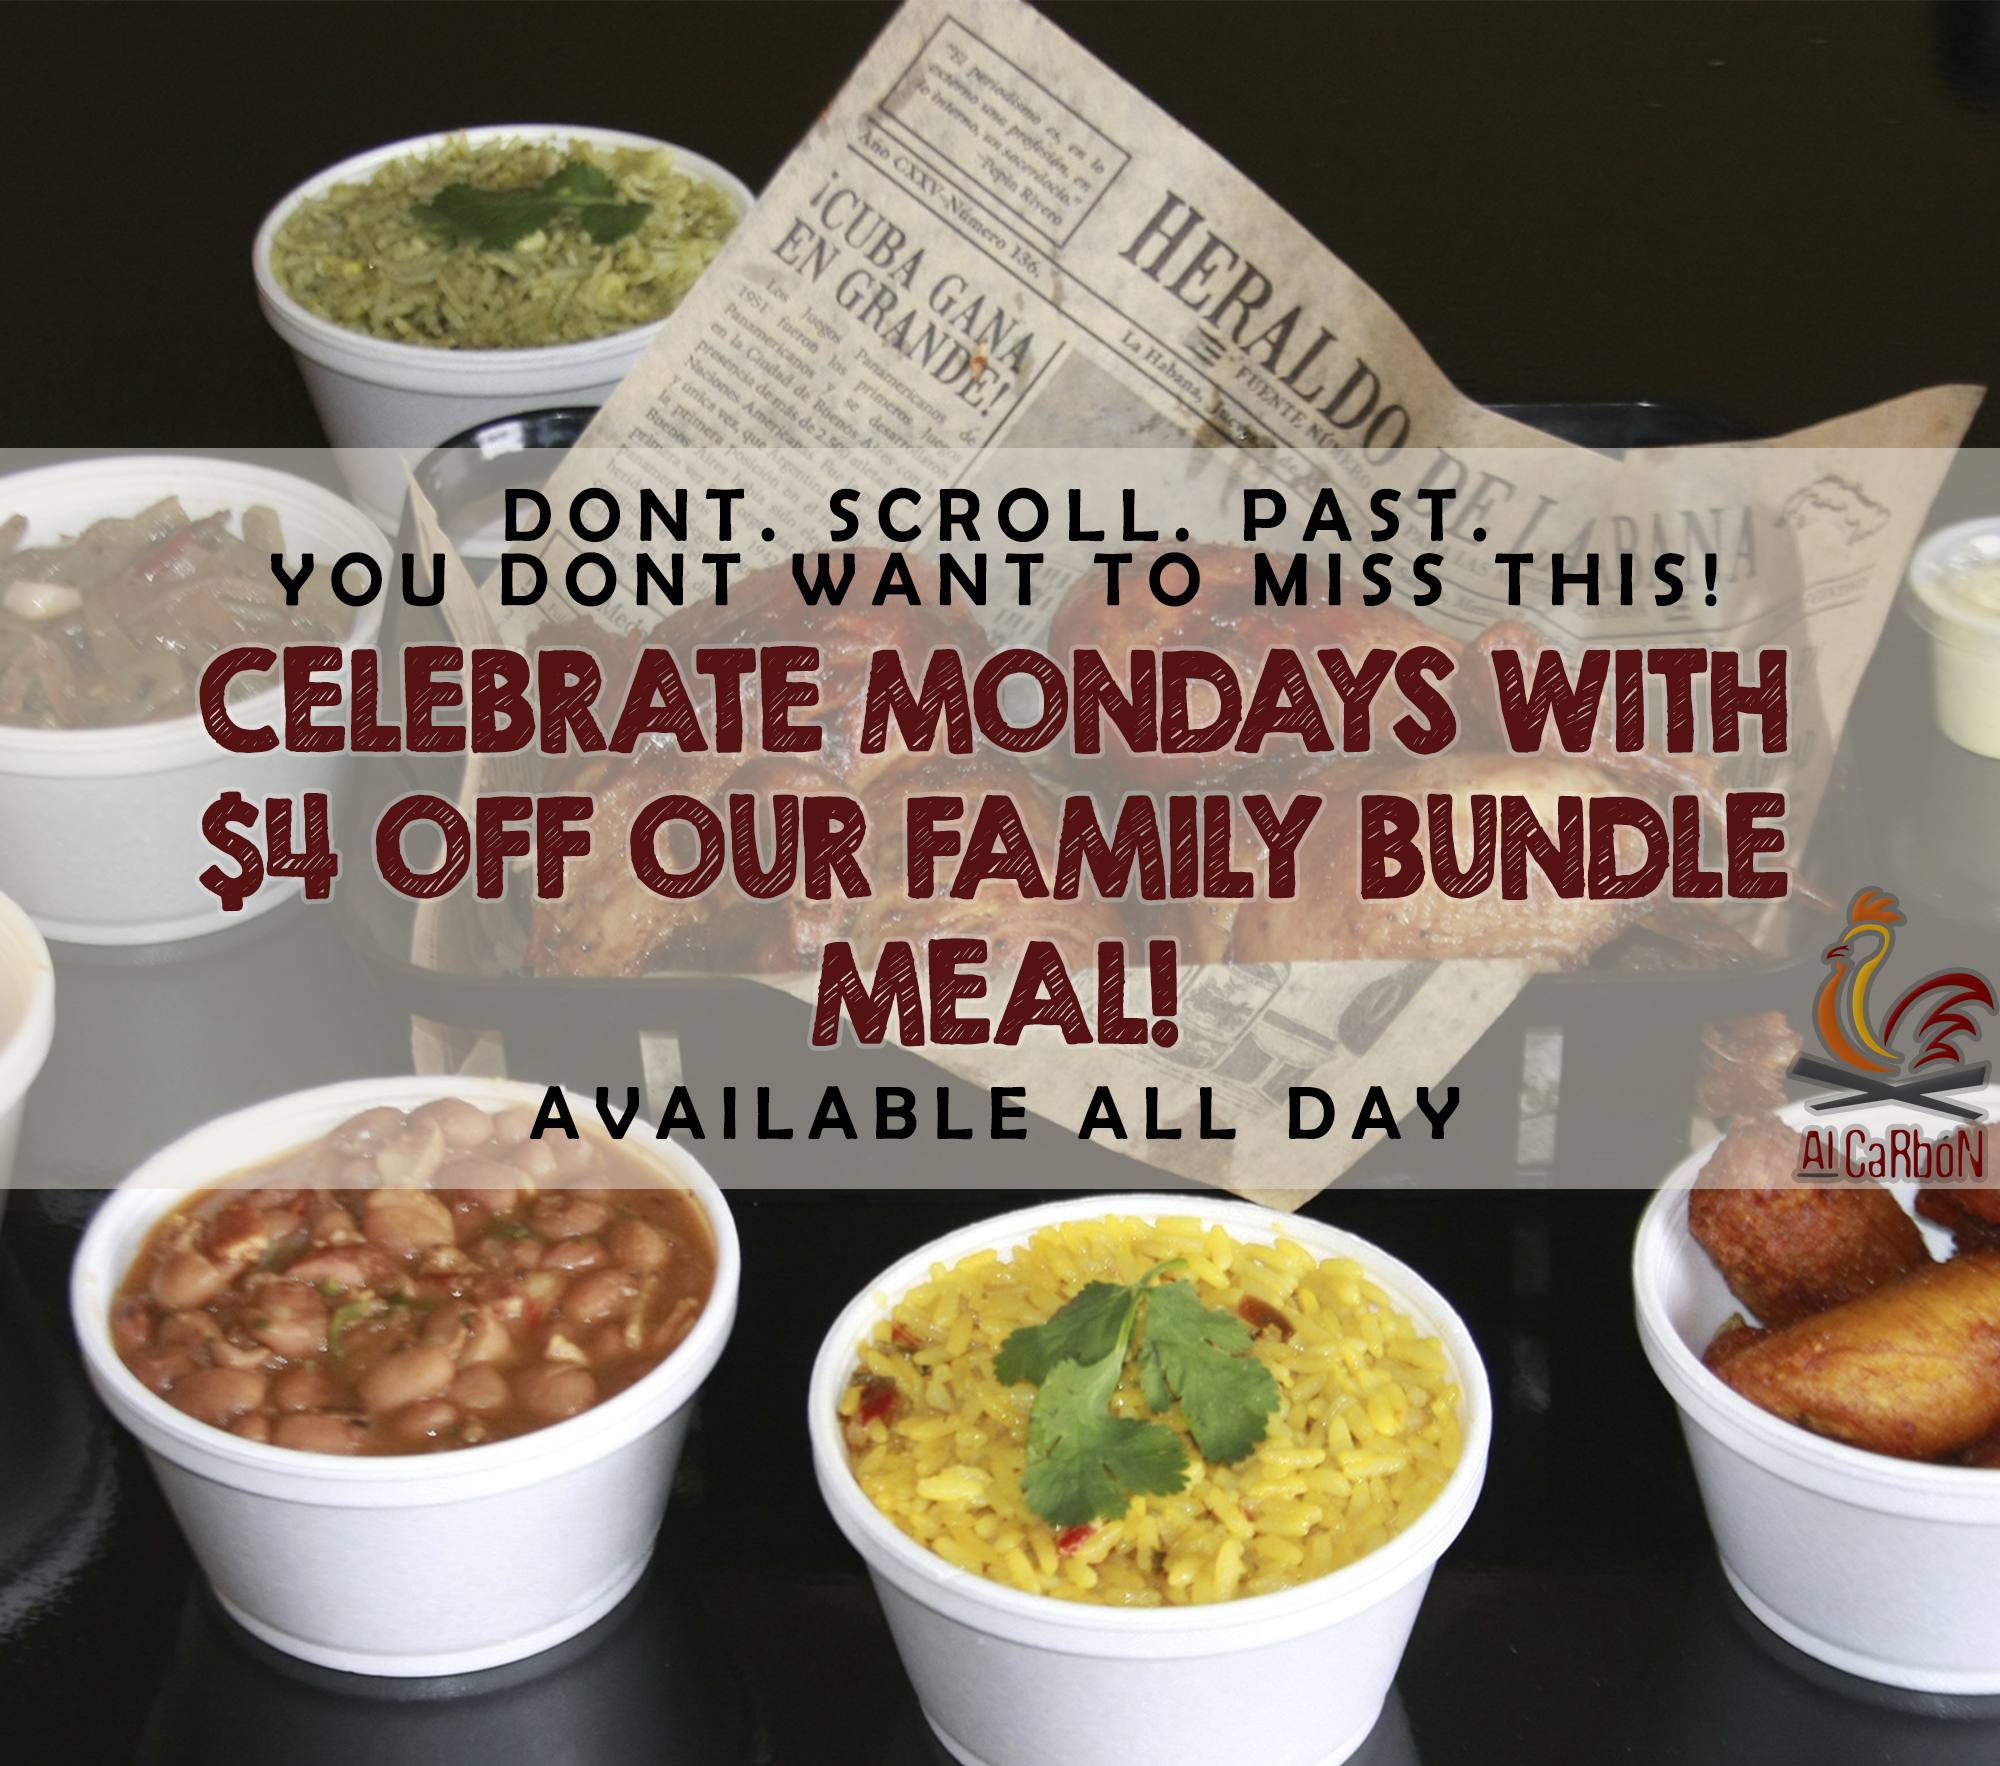 don't. scroll. past. you don't want to miss this! Celebrate Mondays with $4 off our Family Bundle Meal! Available All Day